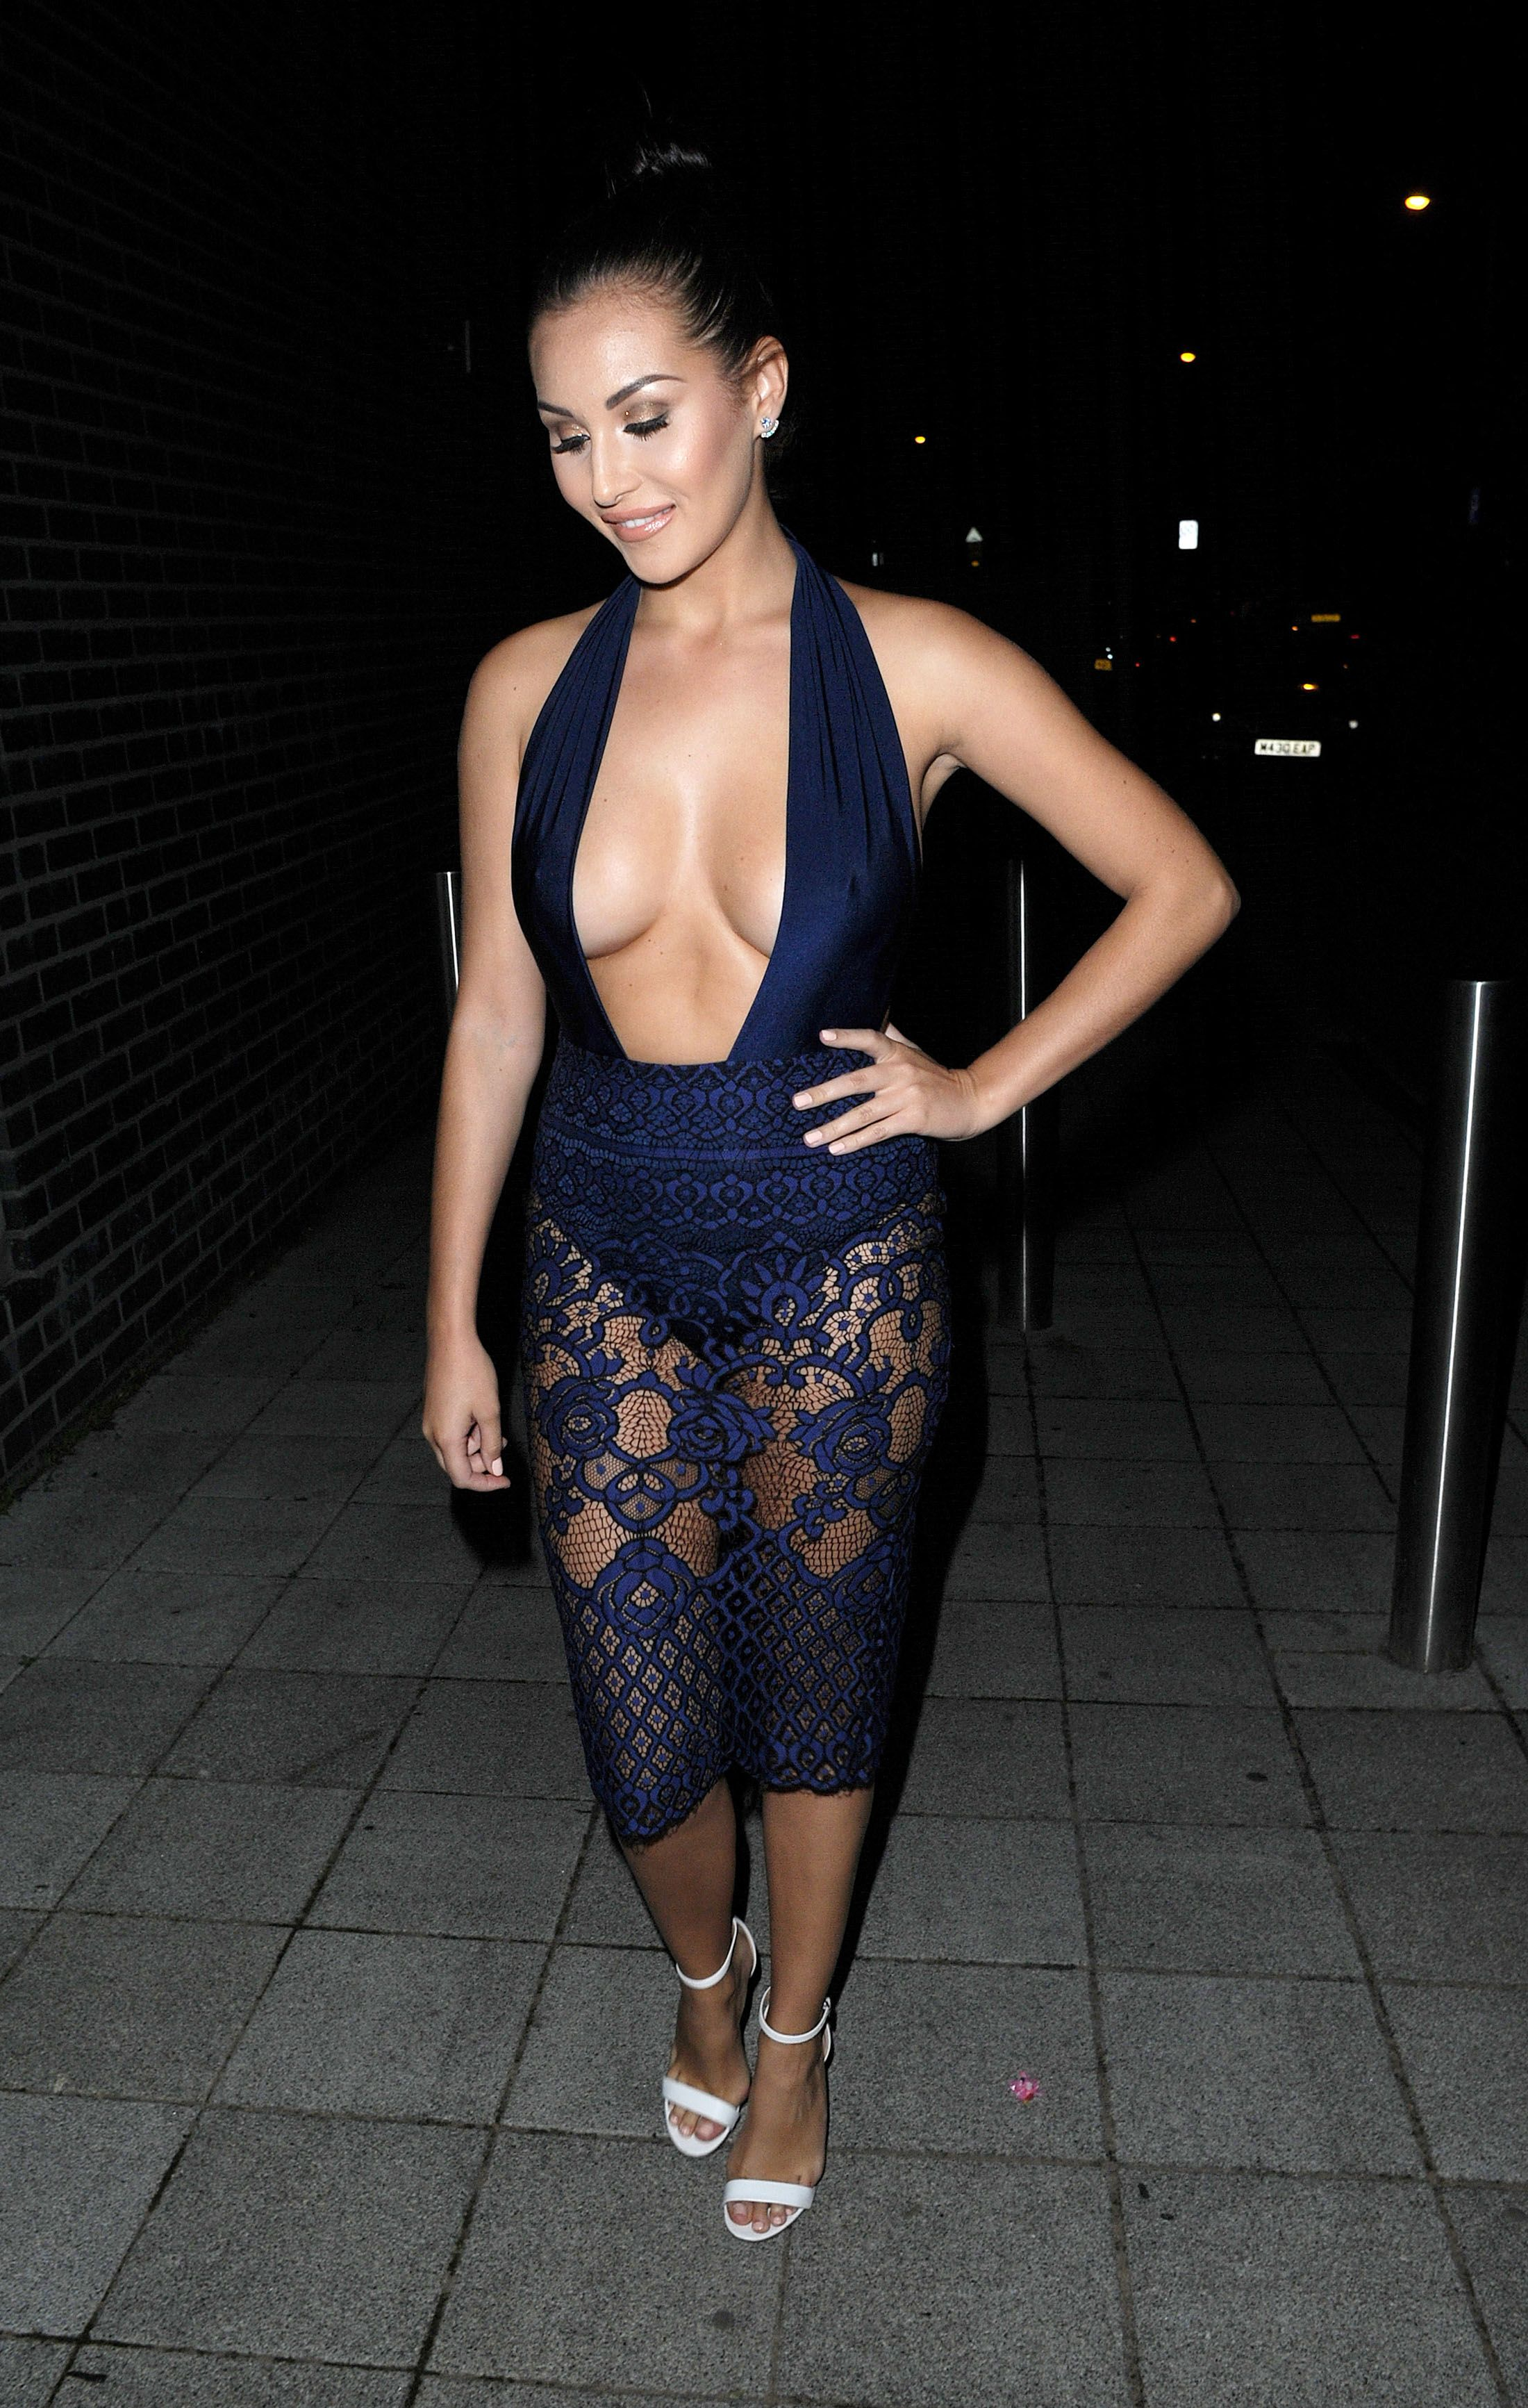 Chloe Goodman Cleavage Ph...